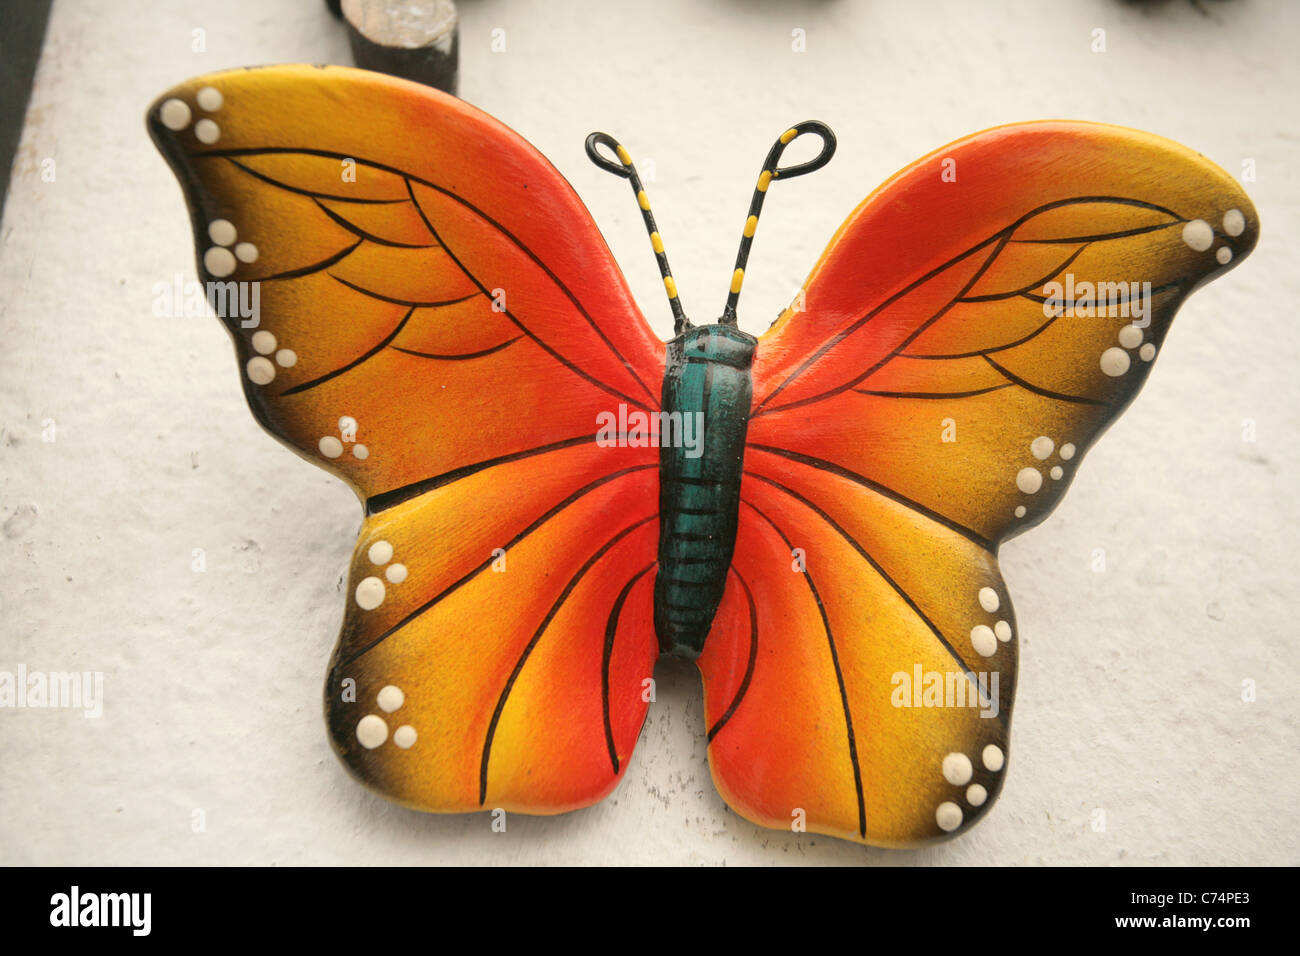 Hand Painted Ceramic Butterfly Craft Decorating The Wall Of A Store